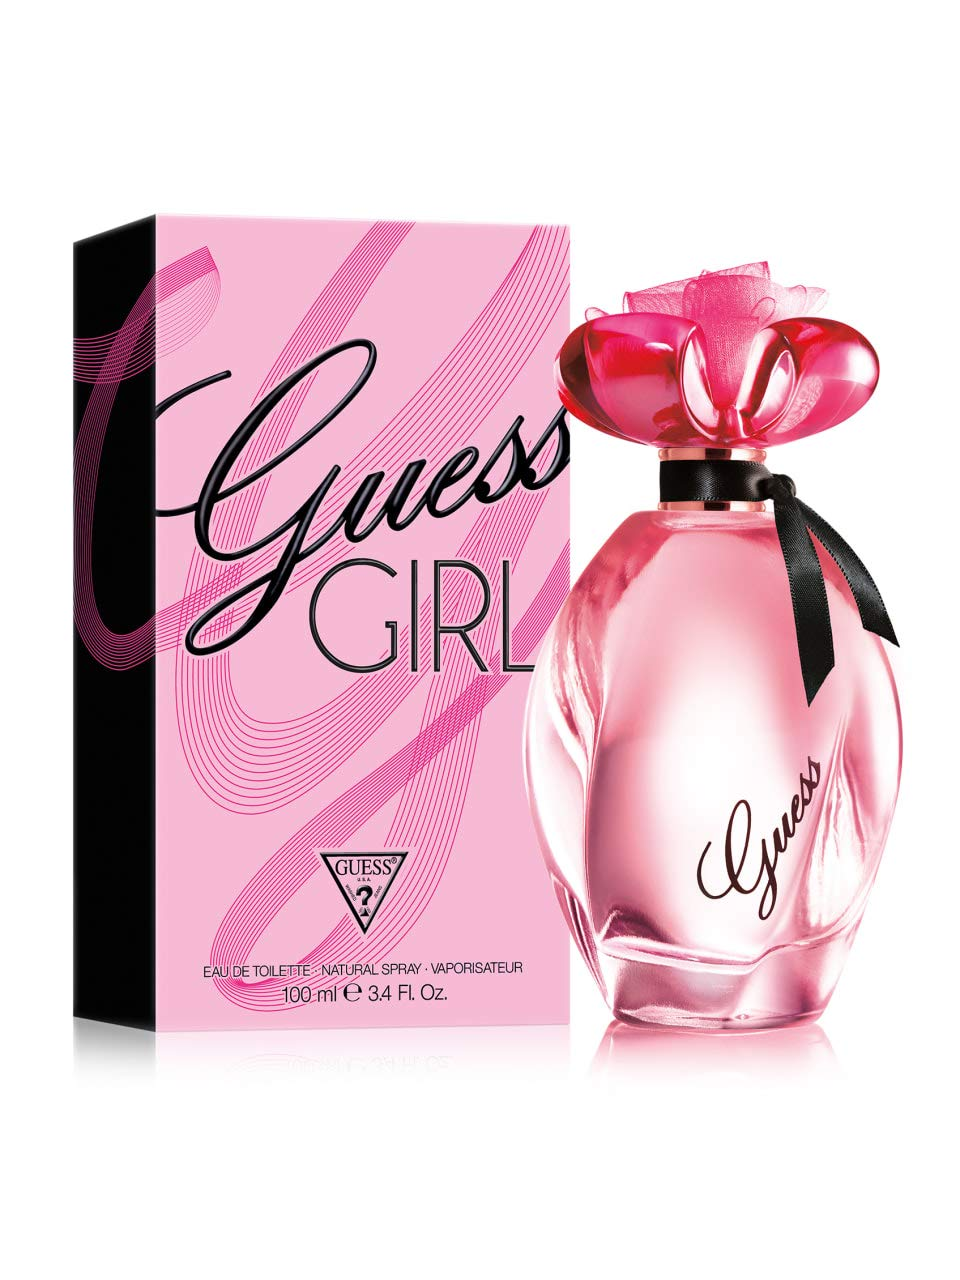 GUESS Girl Eau de Toilette Spray for Women, 3.4 Ounce